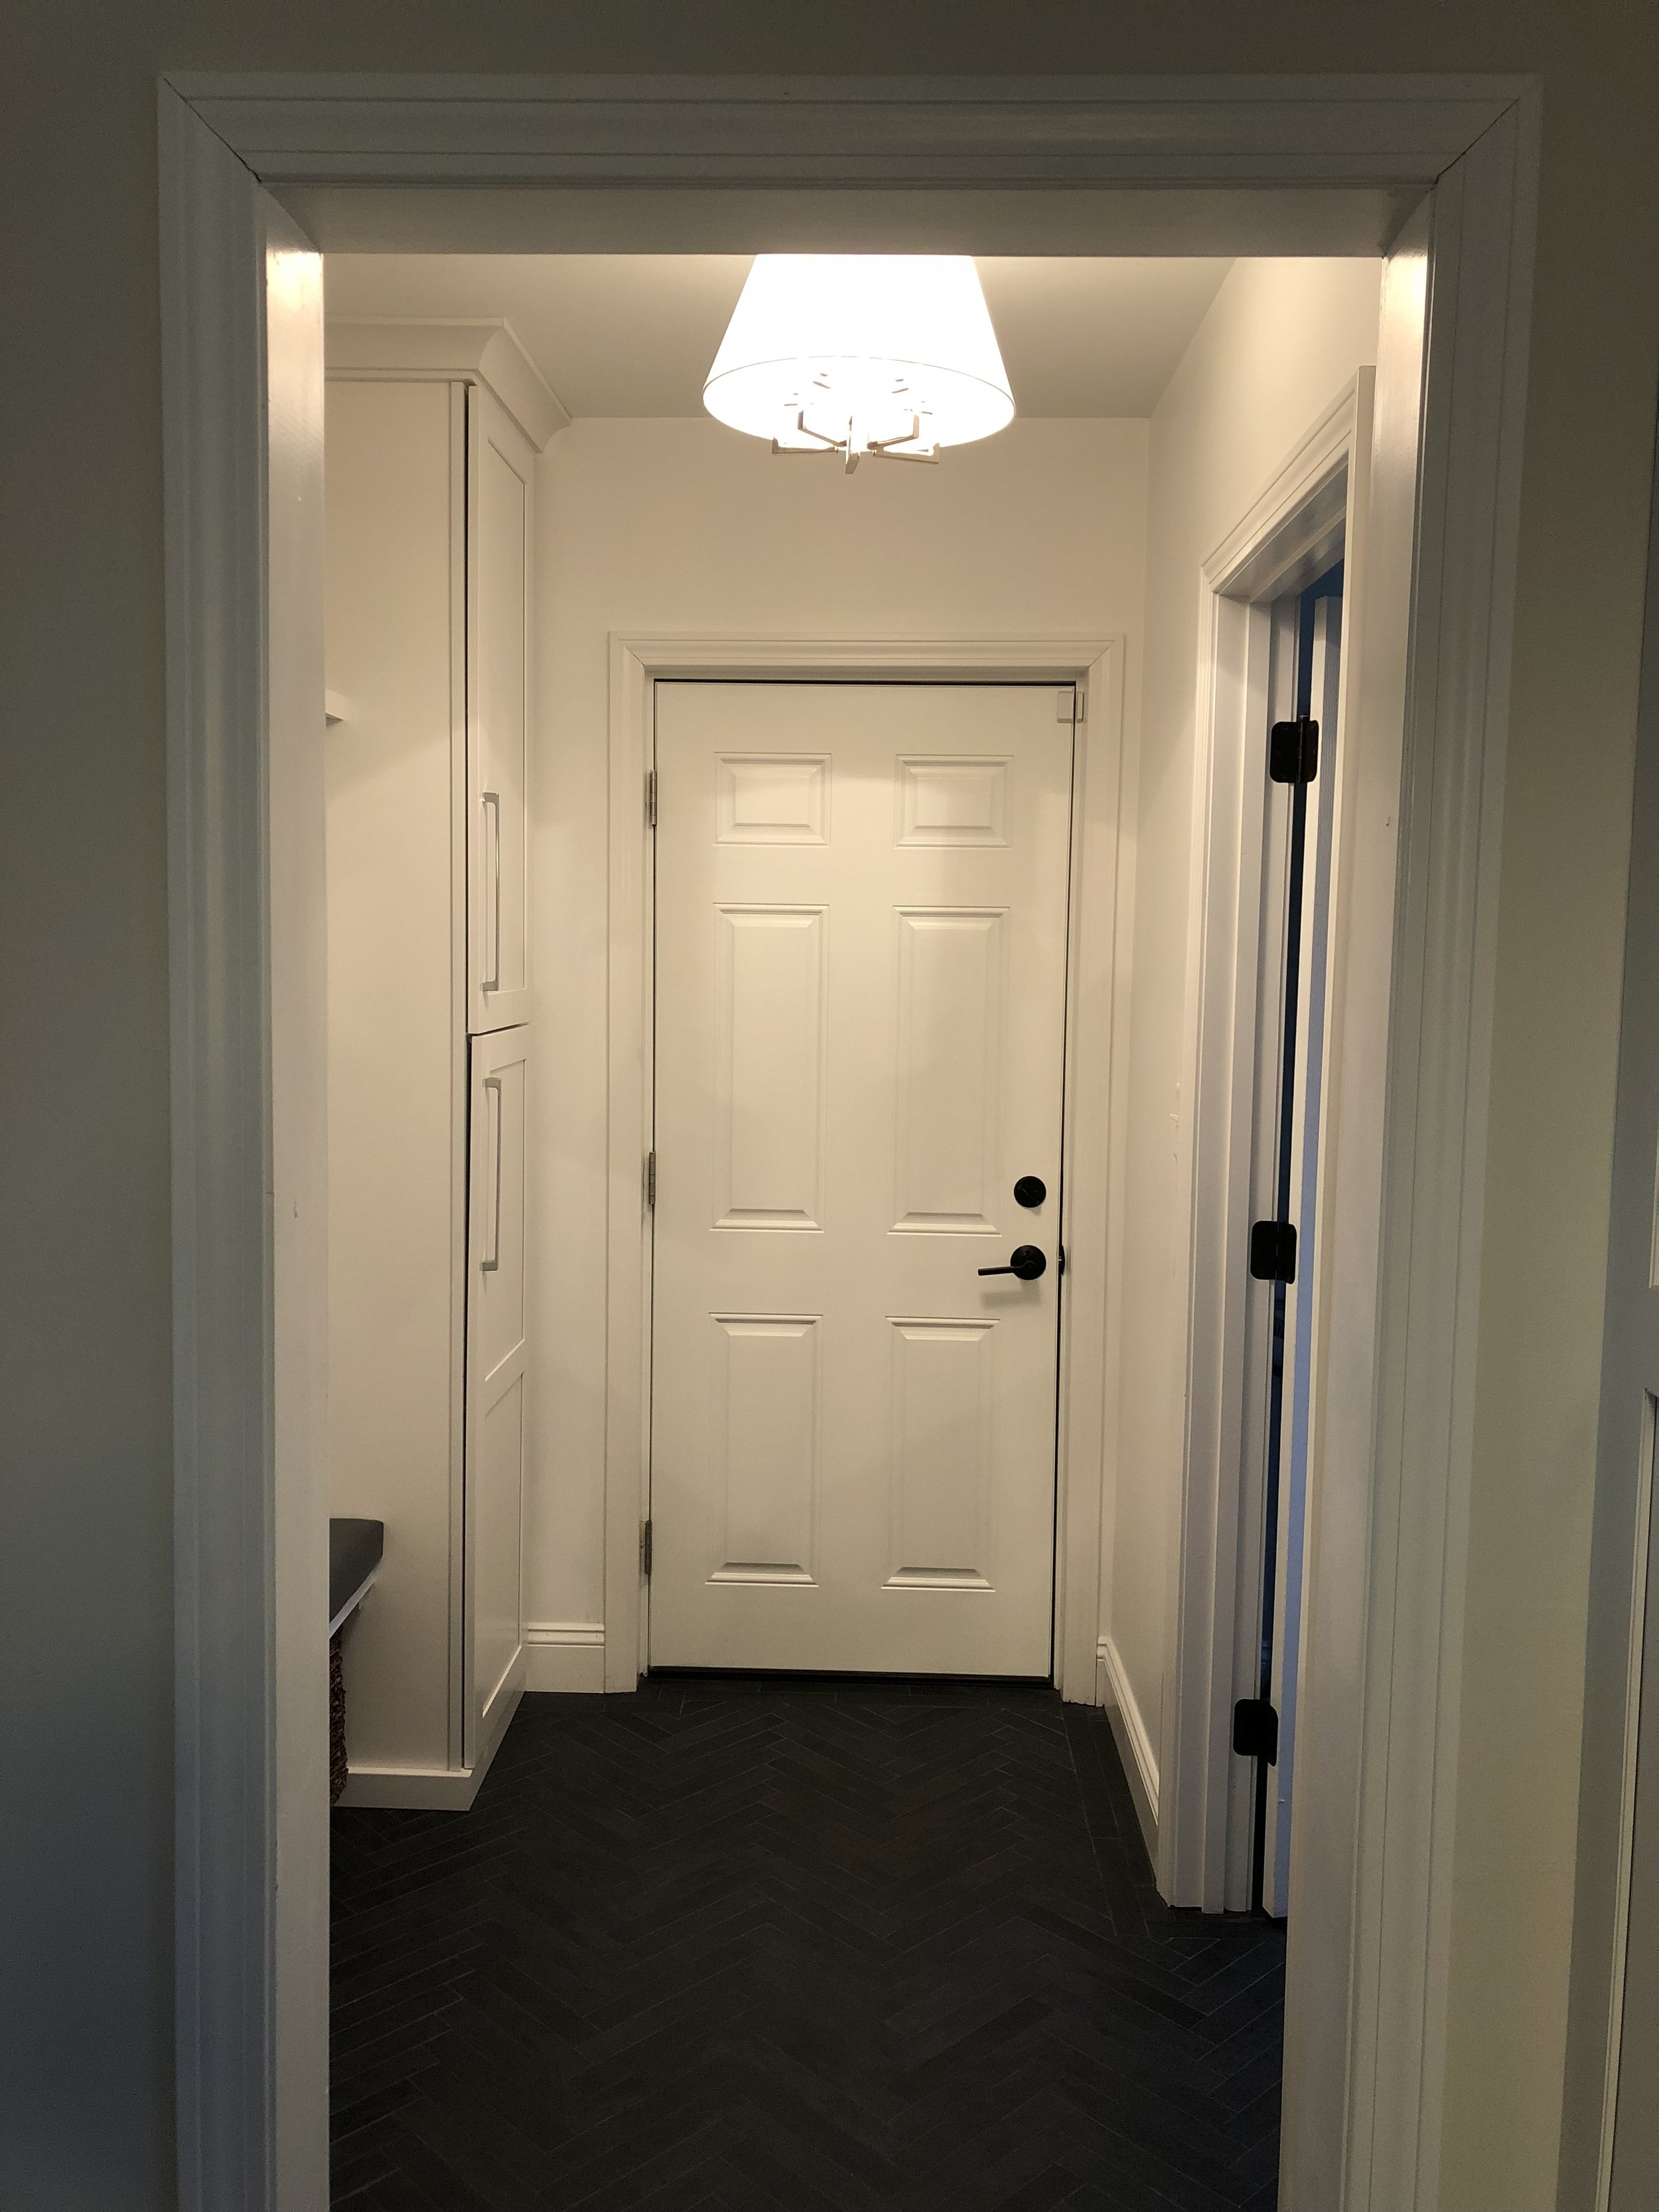 After Mudroom Renovation - Pelham, NH